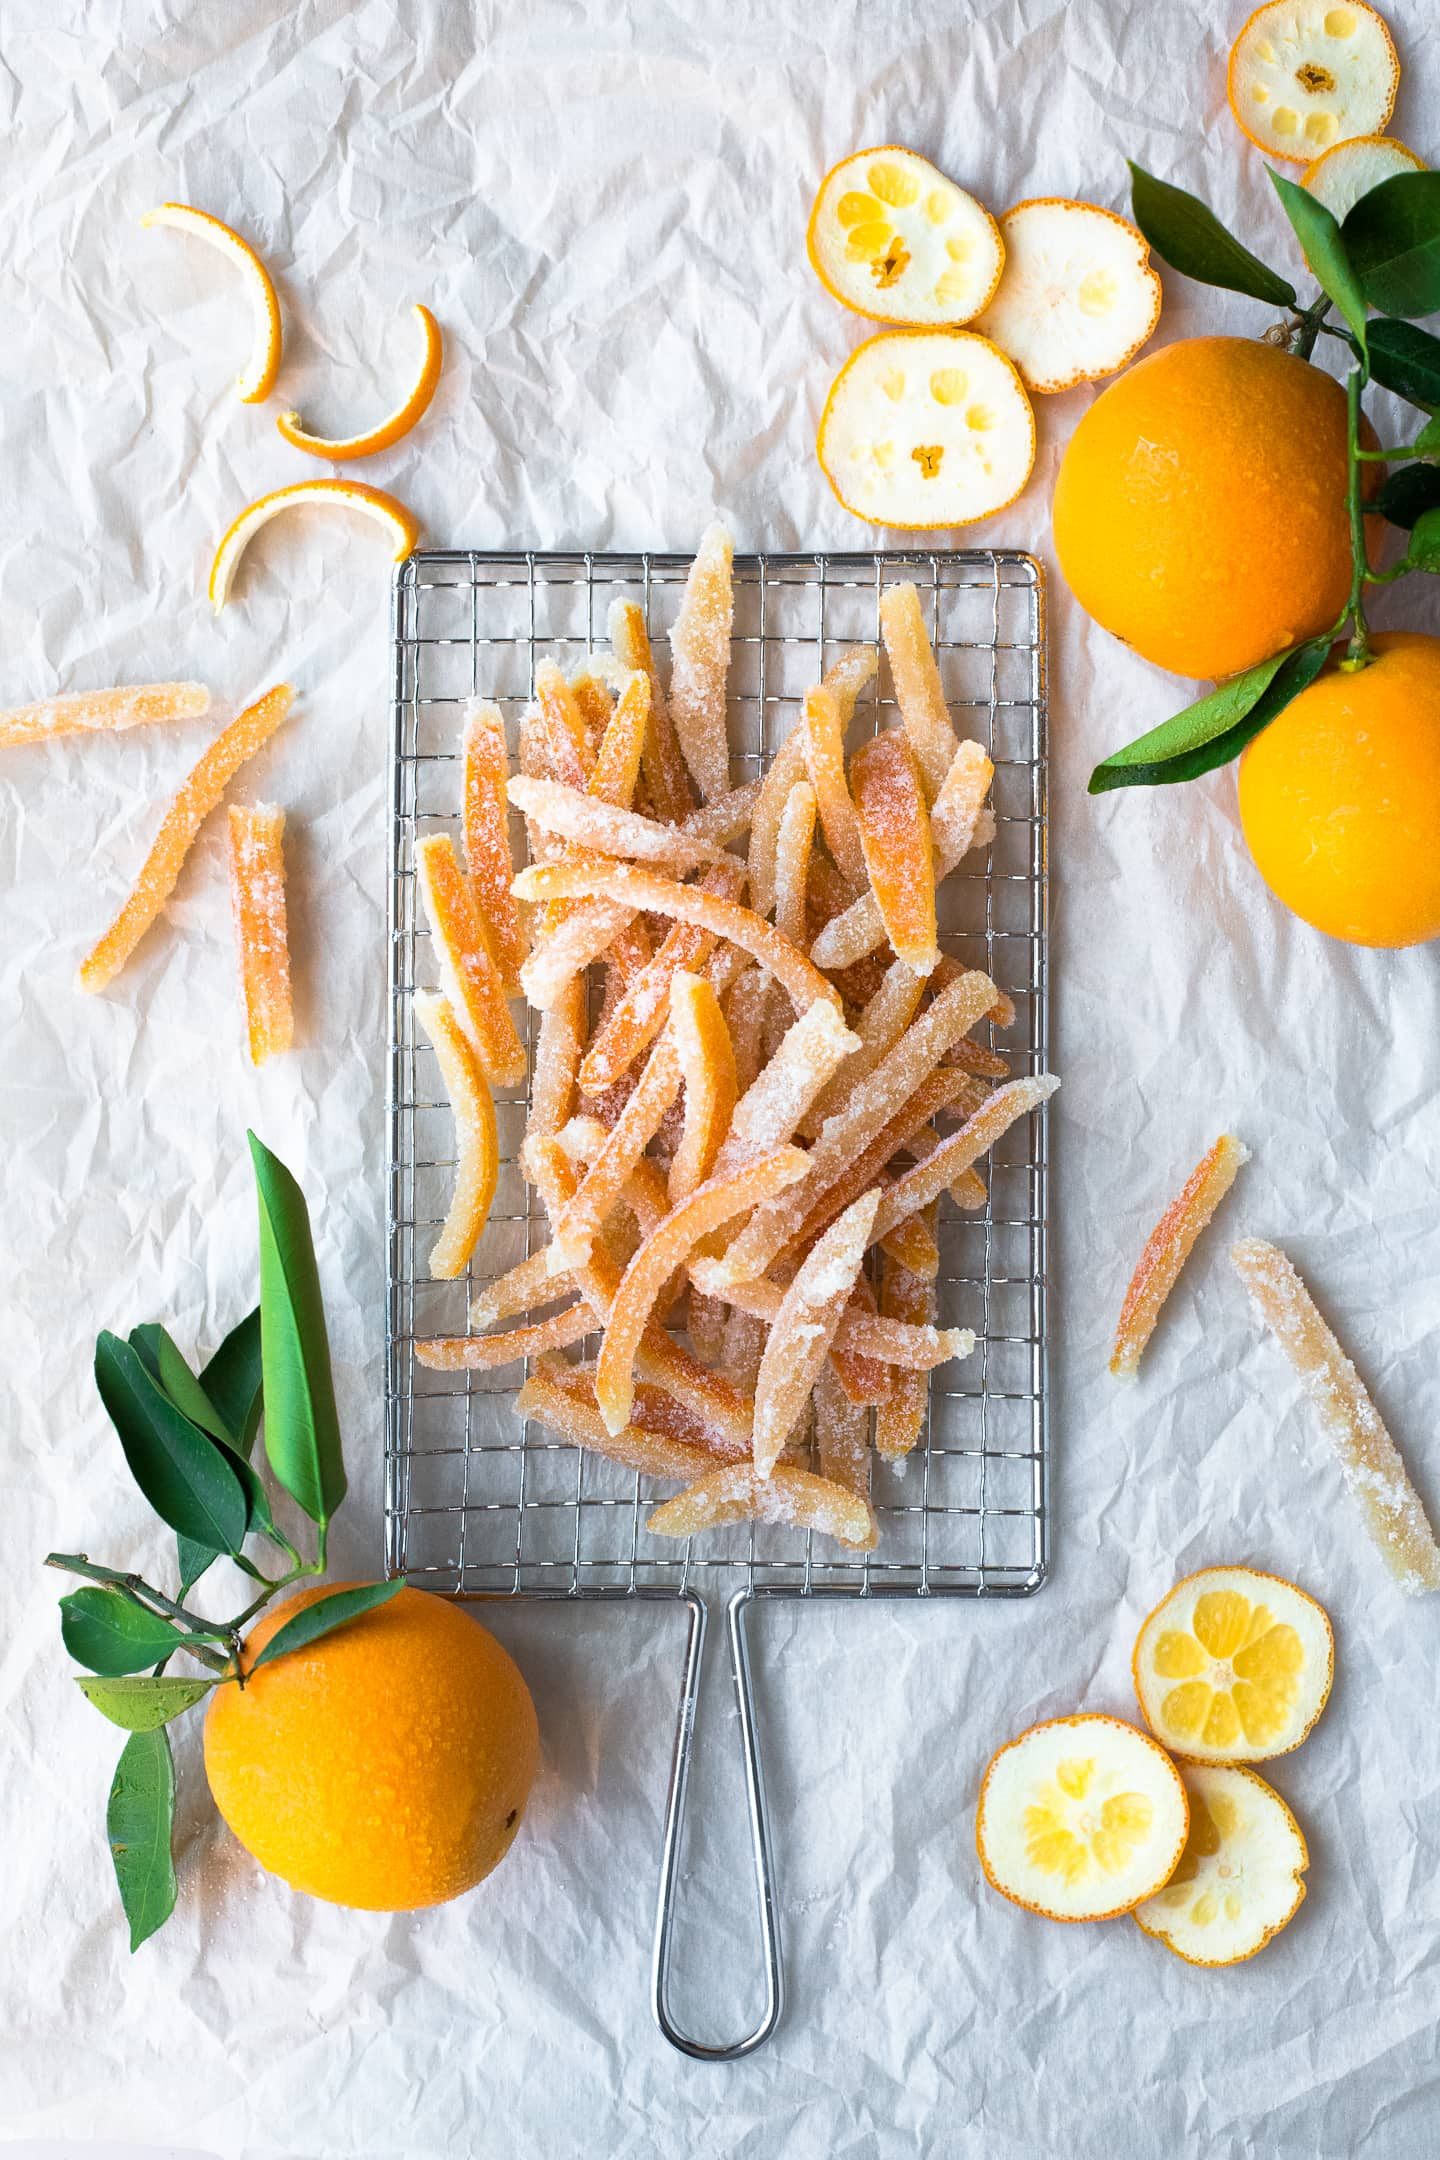 Overhead view of strips of candied orange peel on a safety grater, surrounded by more oranges and peel cuttings.